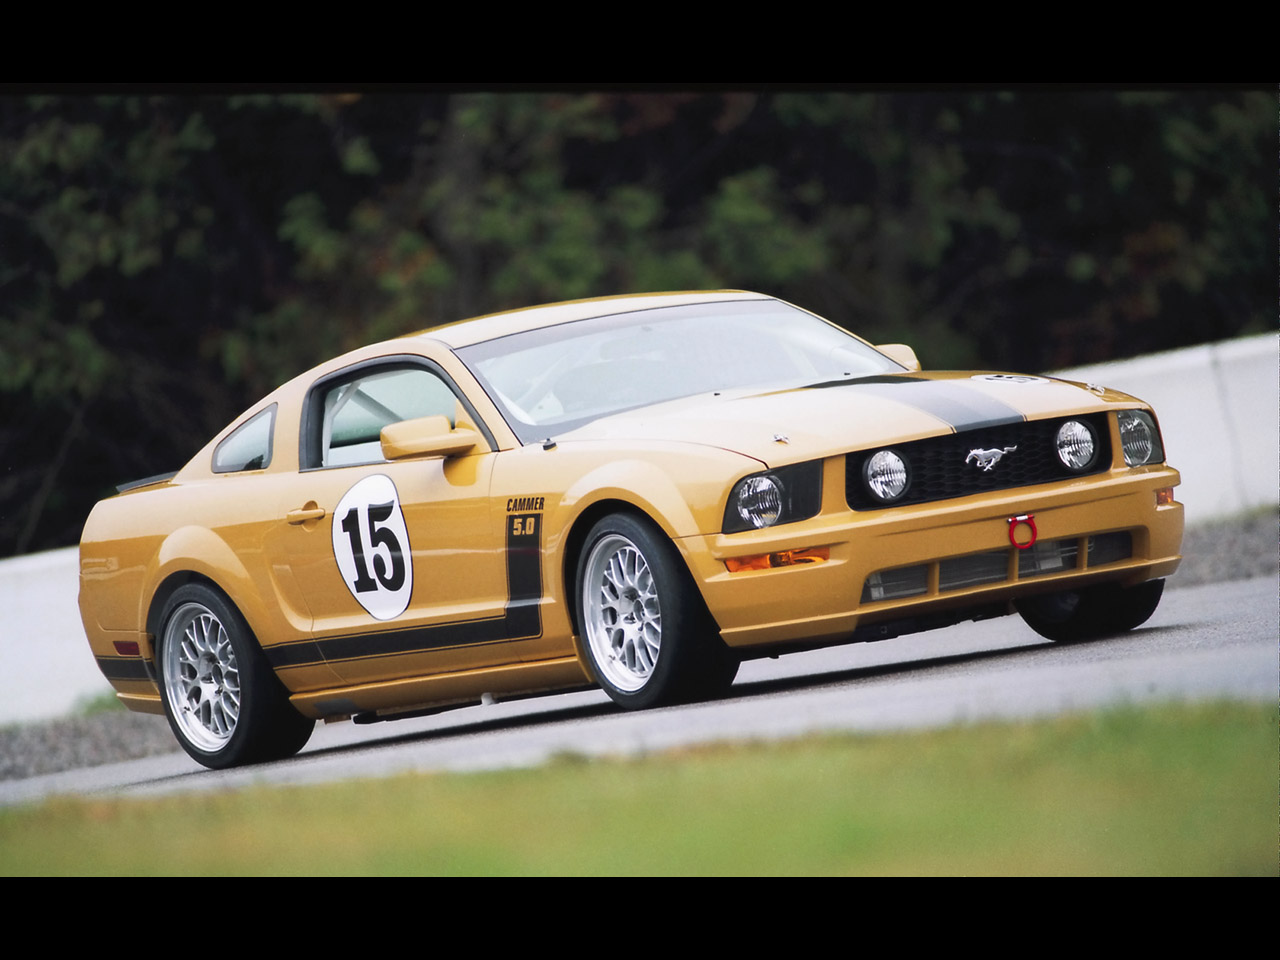 2005 Ford Mustang Racecar Prototype photo - 3